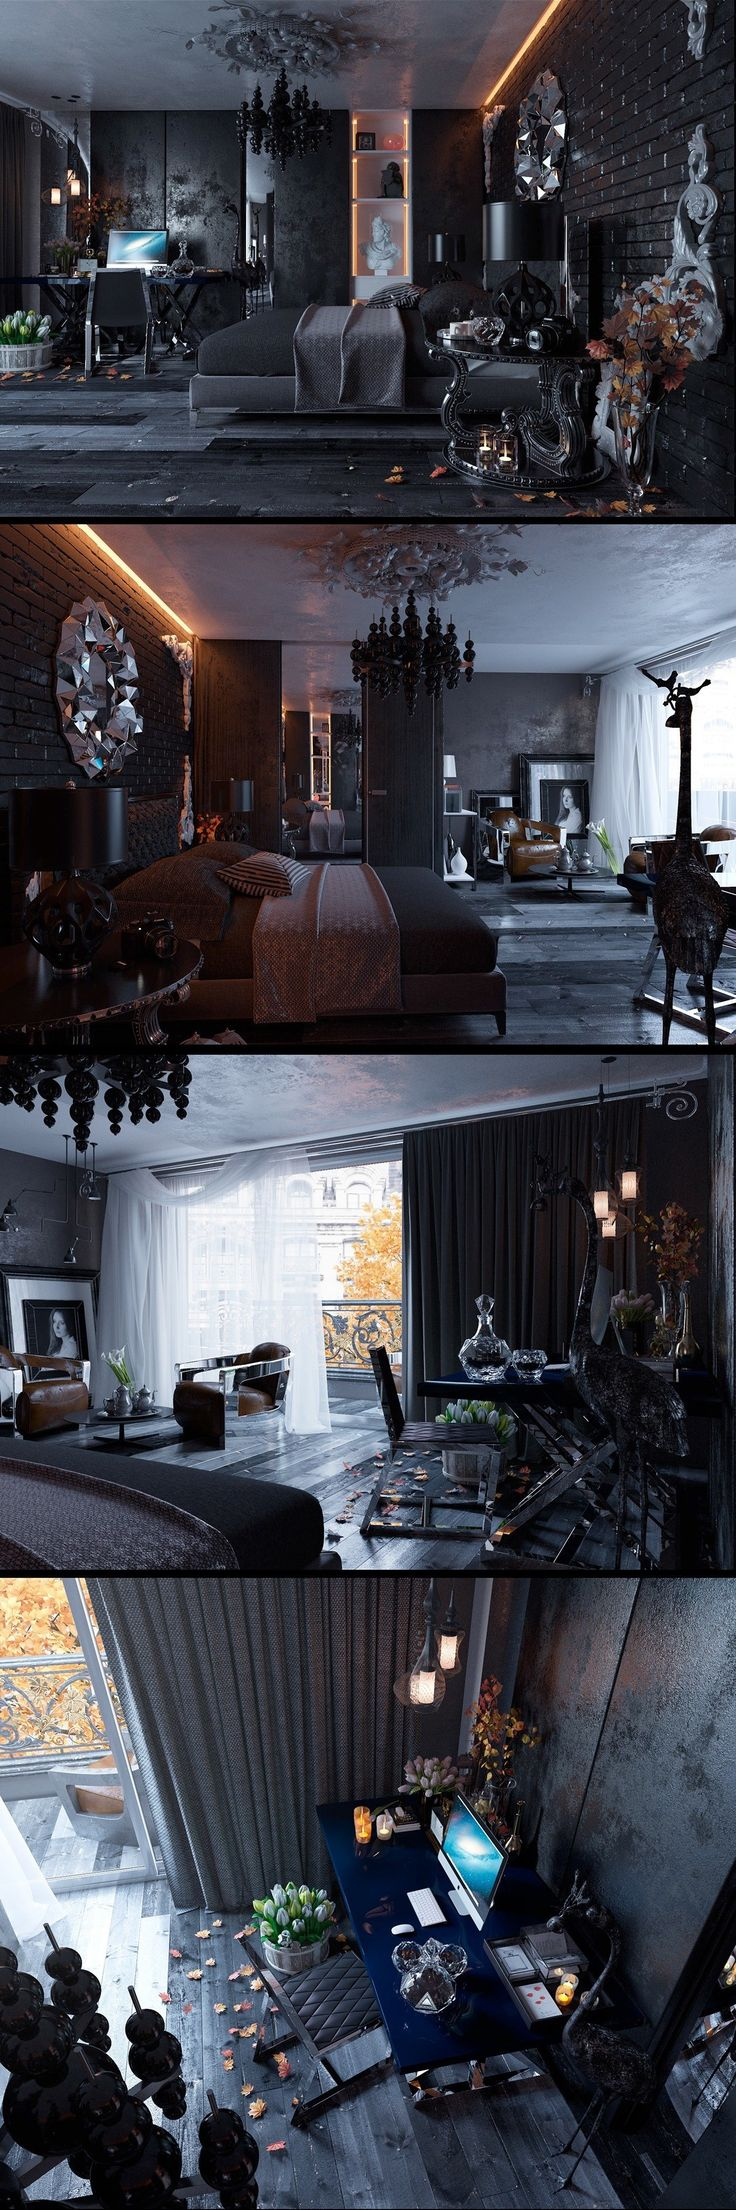 Goth Bedroom Furniture 17 Best Ideas About Goth Bedroom On Pinterest Gothic Bedroom